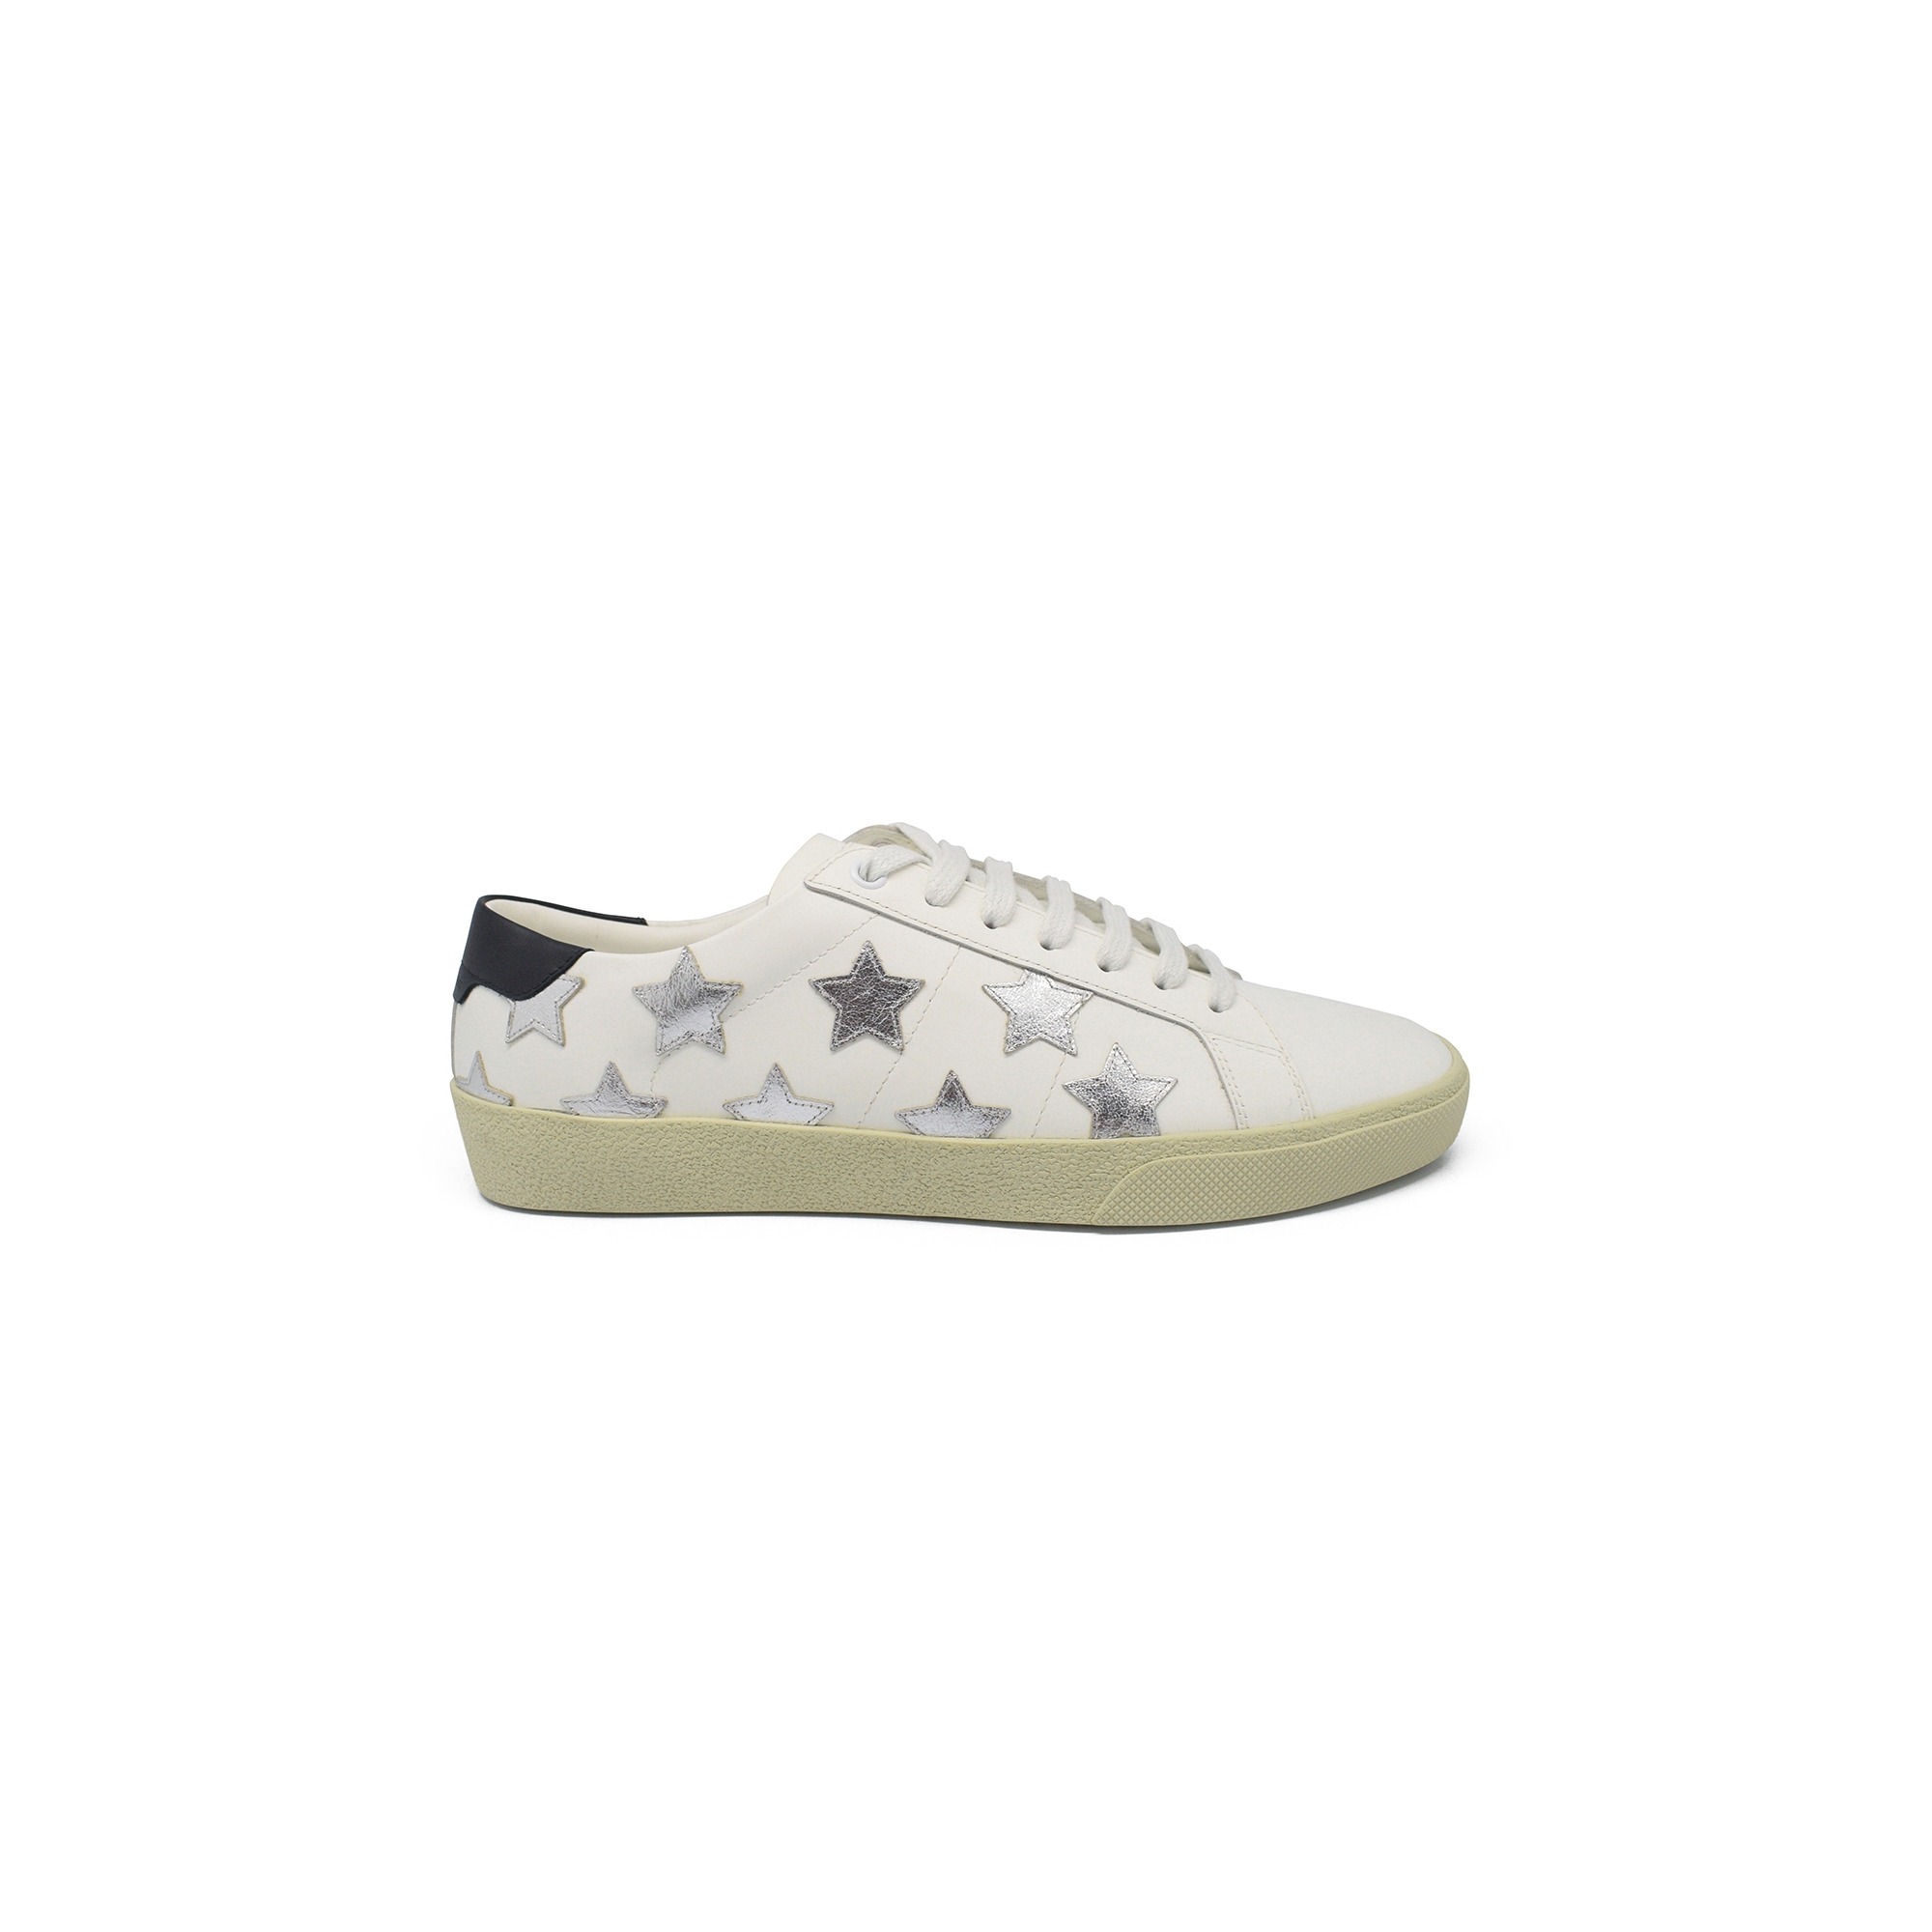 Saint Laurent Court Classic SL/06 sneakers in white leather with stars in silver metallic leather and black leather heel tab